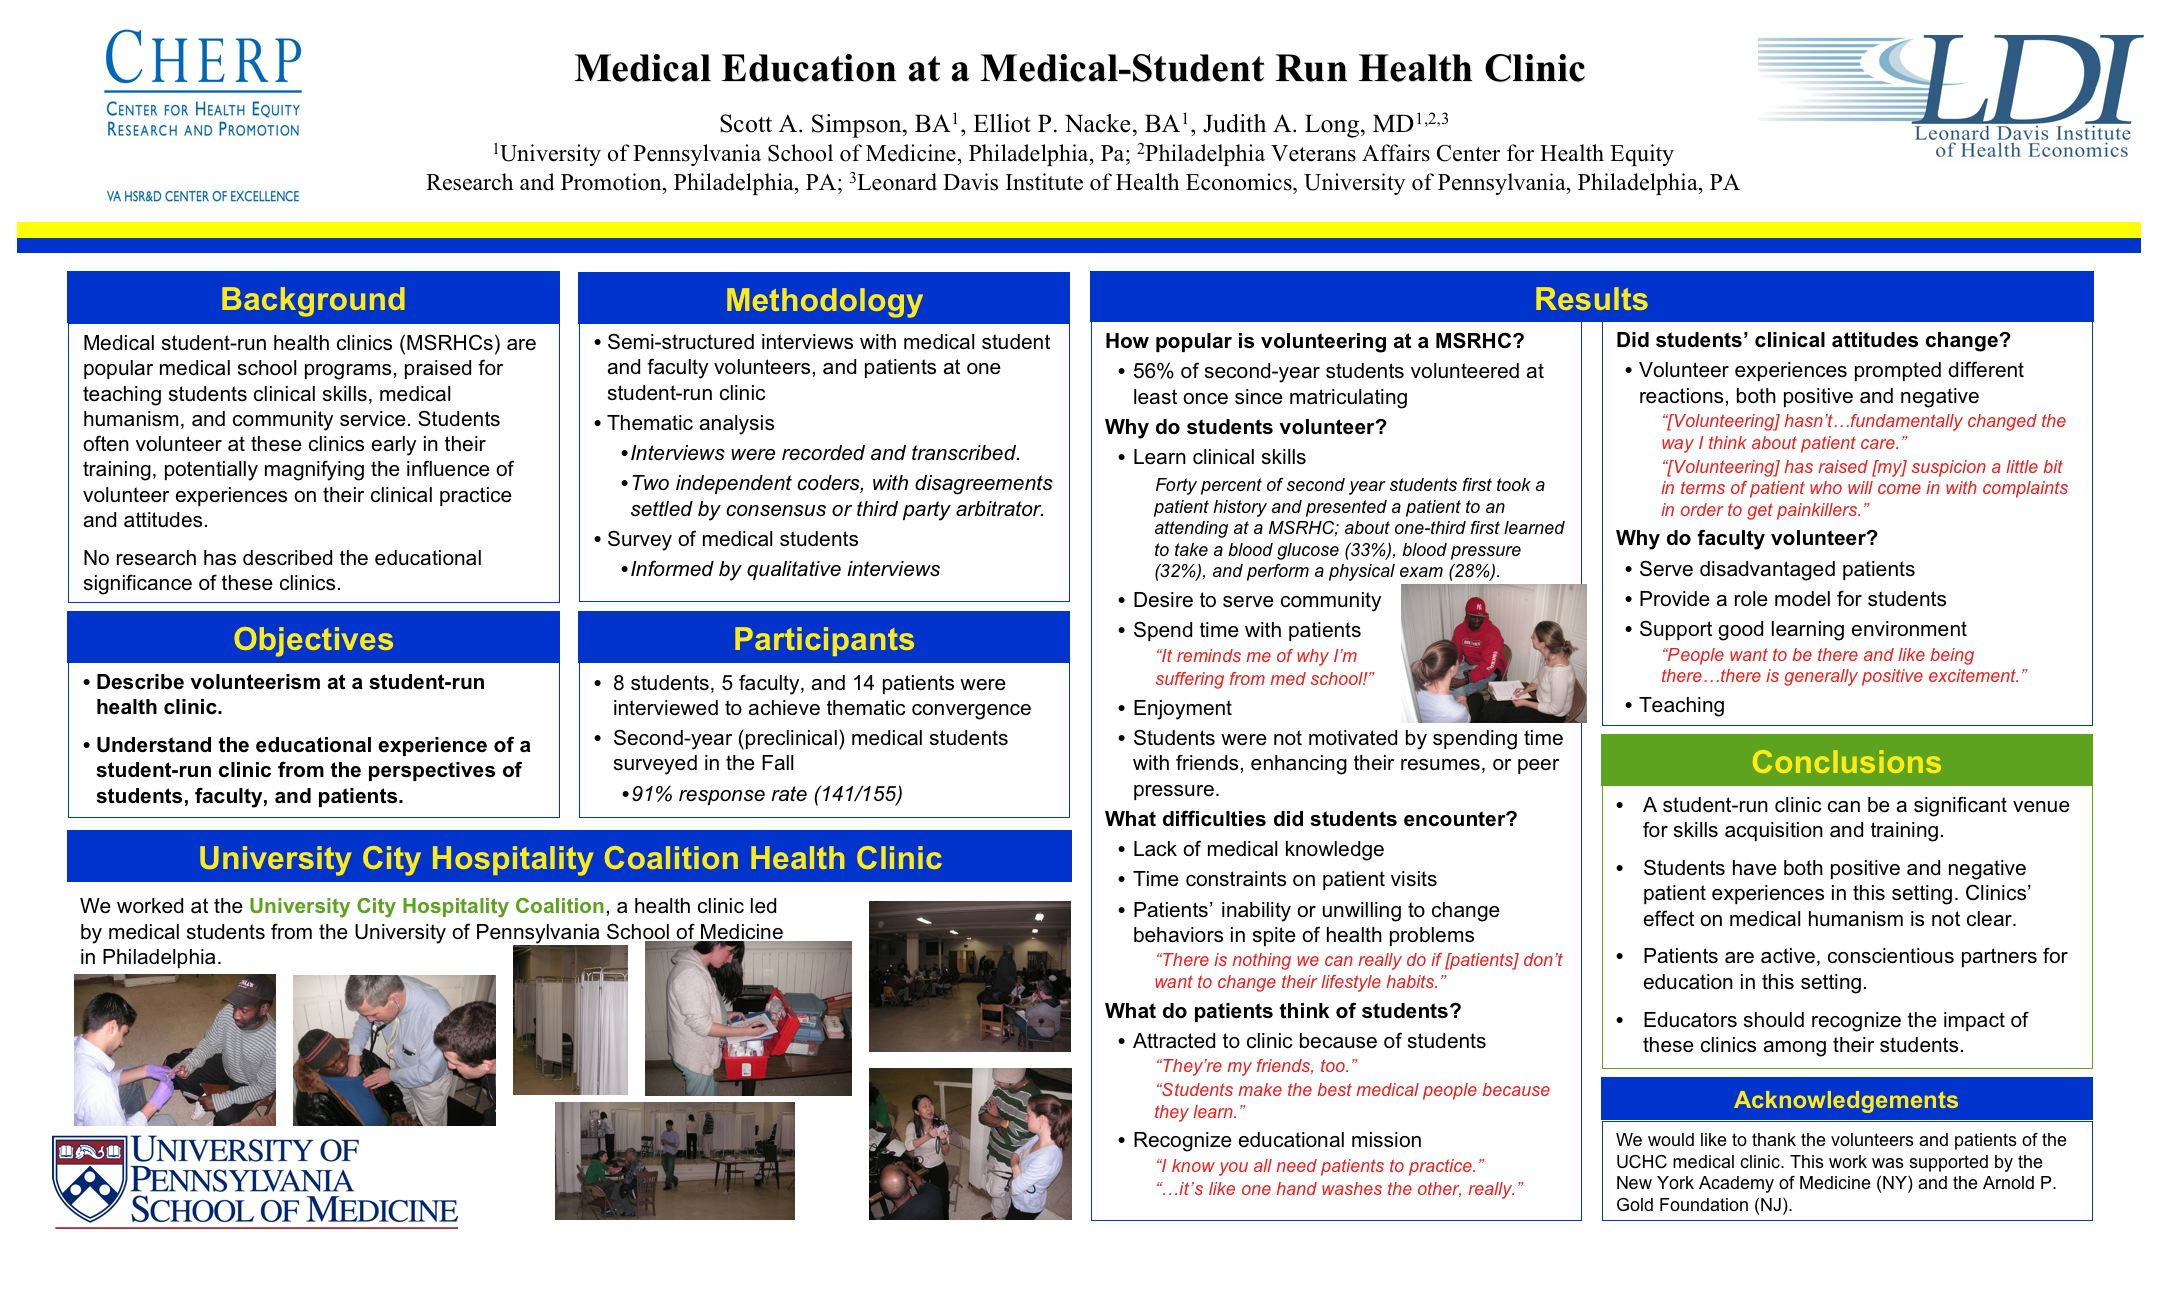 Understanding Medical Student-Run Health Clinics: Research Products